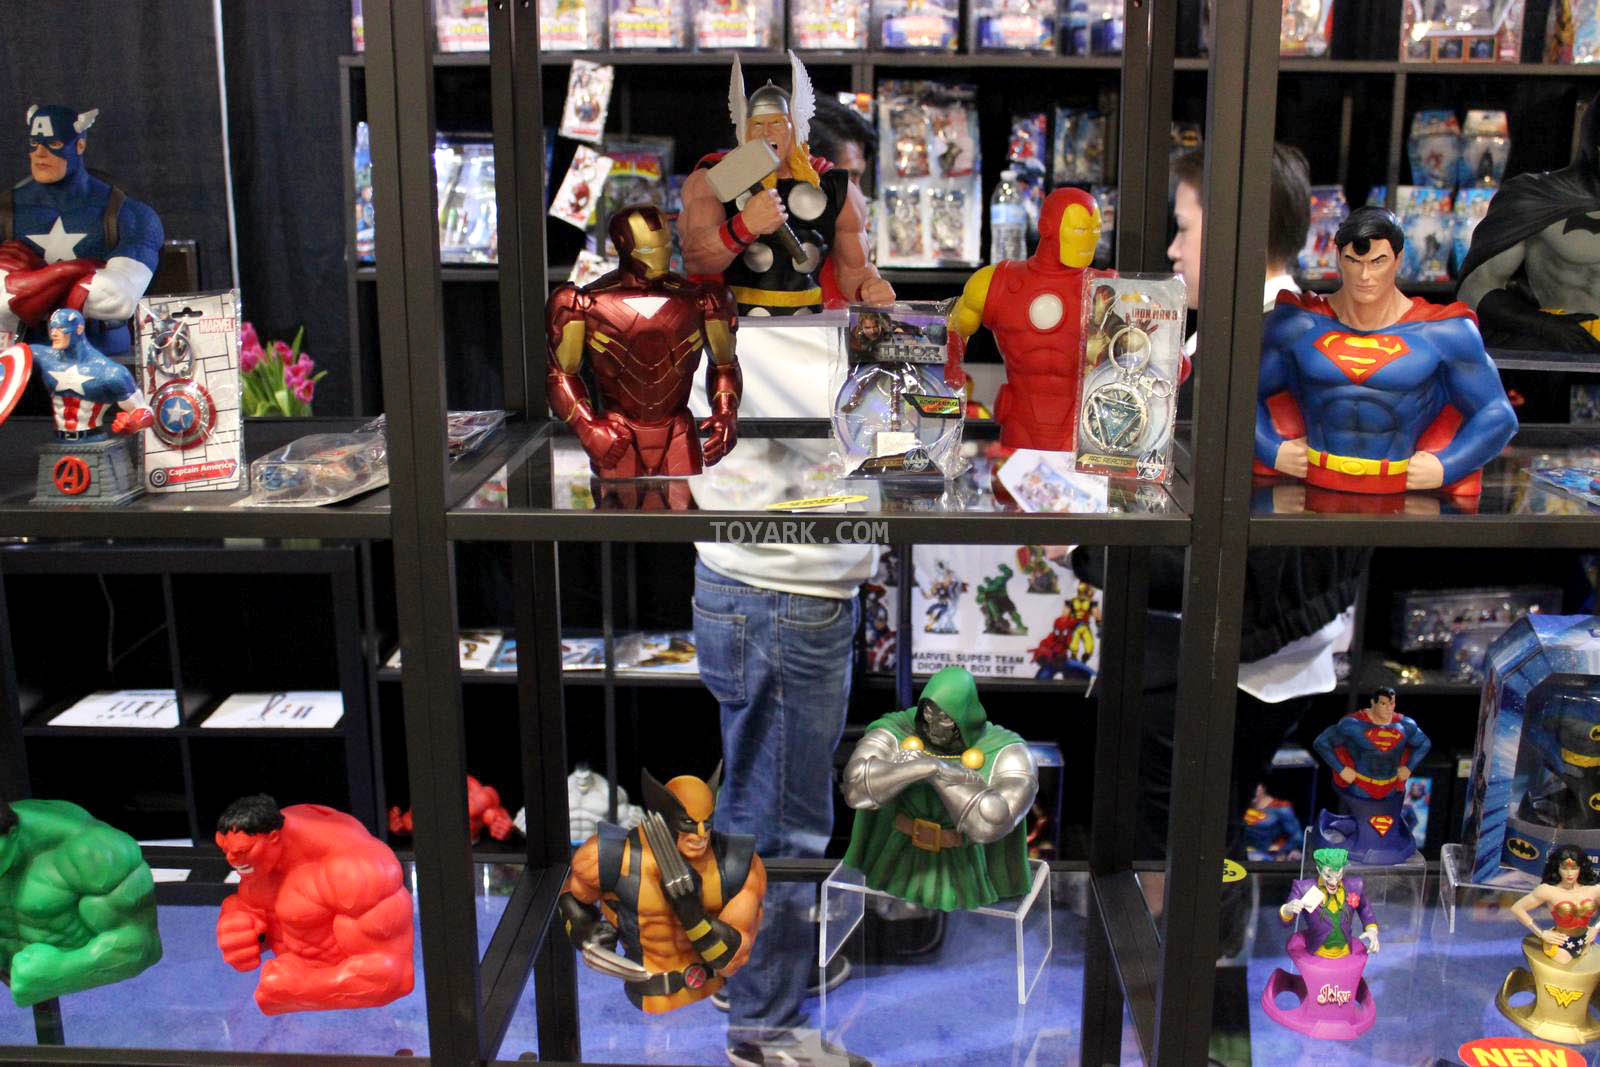 Toy Fair 2014 - Monogram - DC and Marvel Merchandise - The Toyark